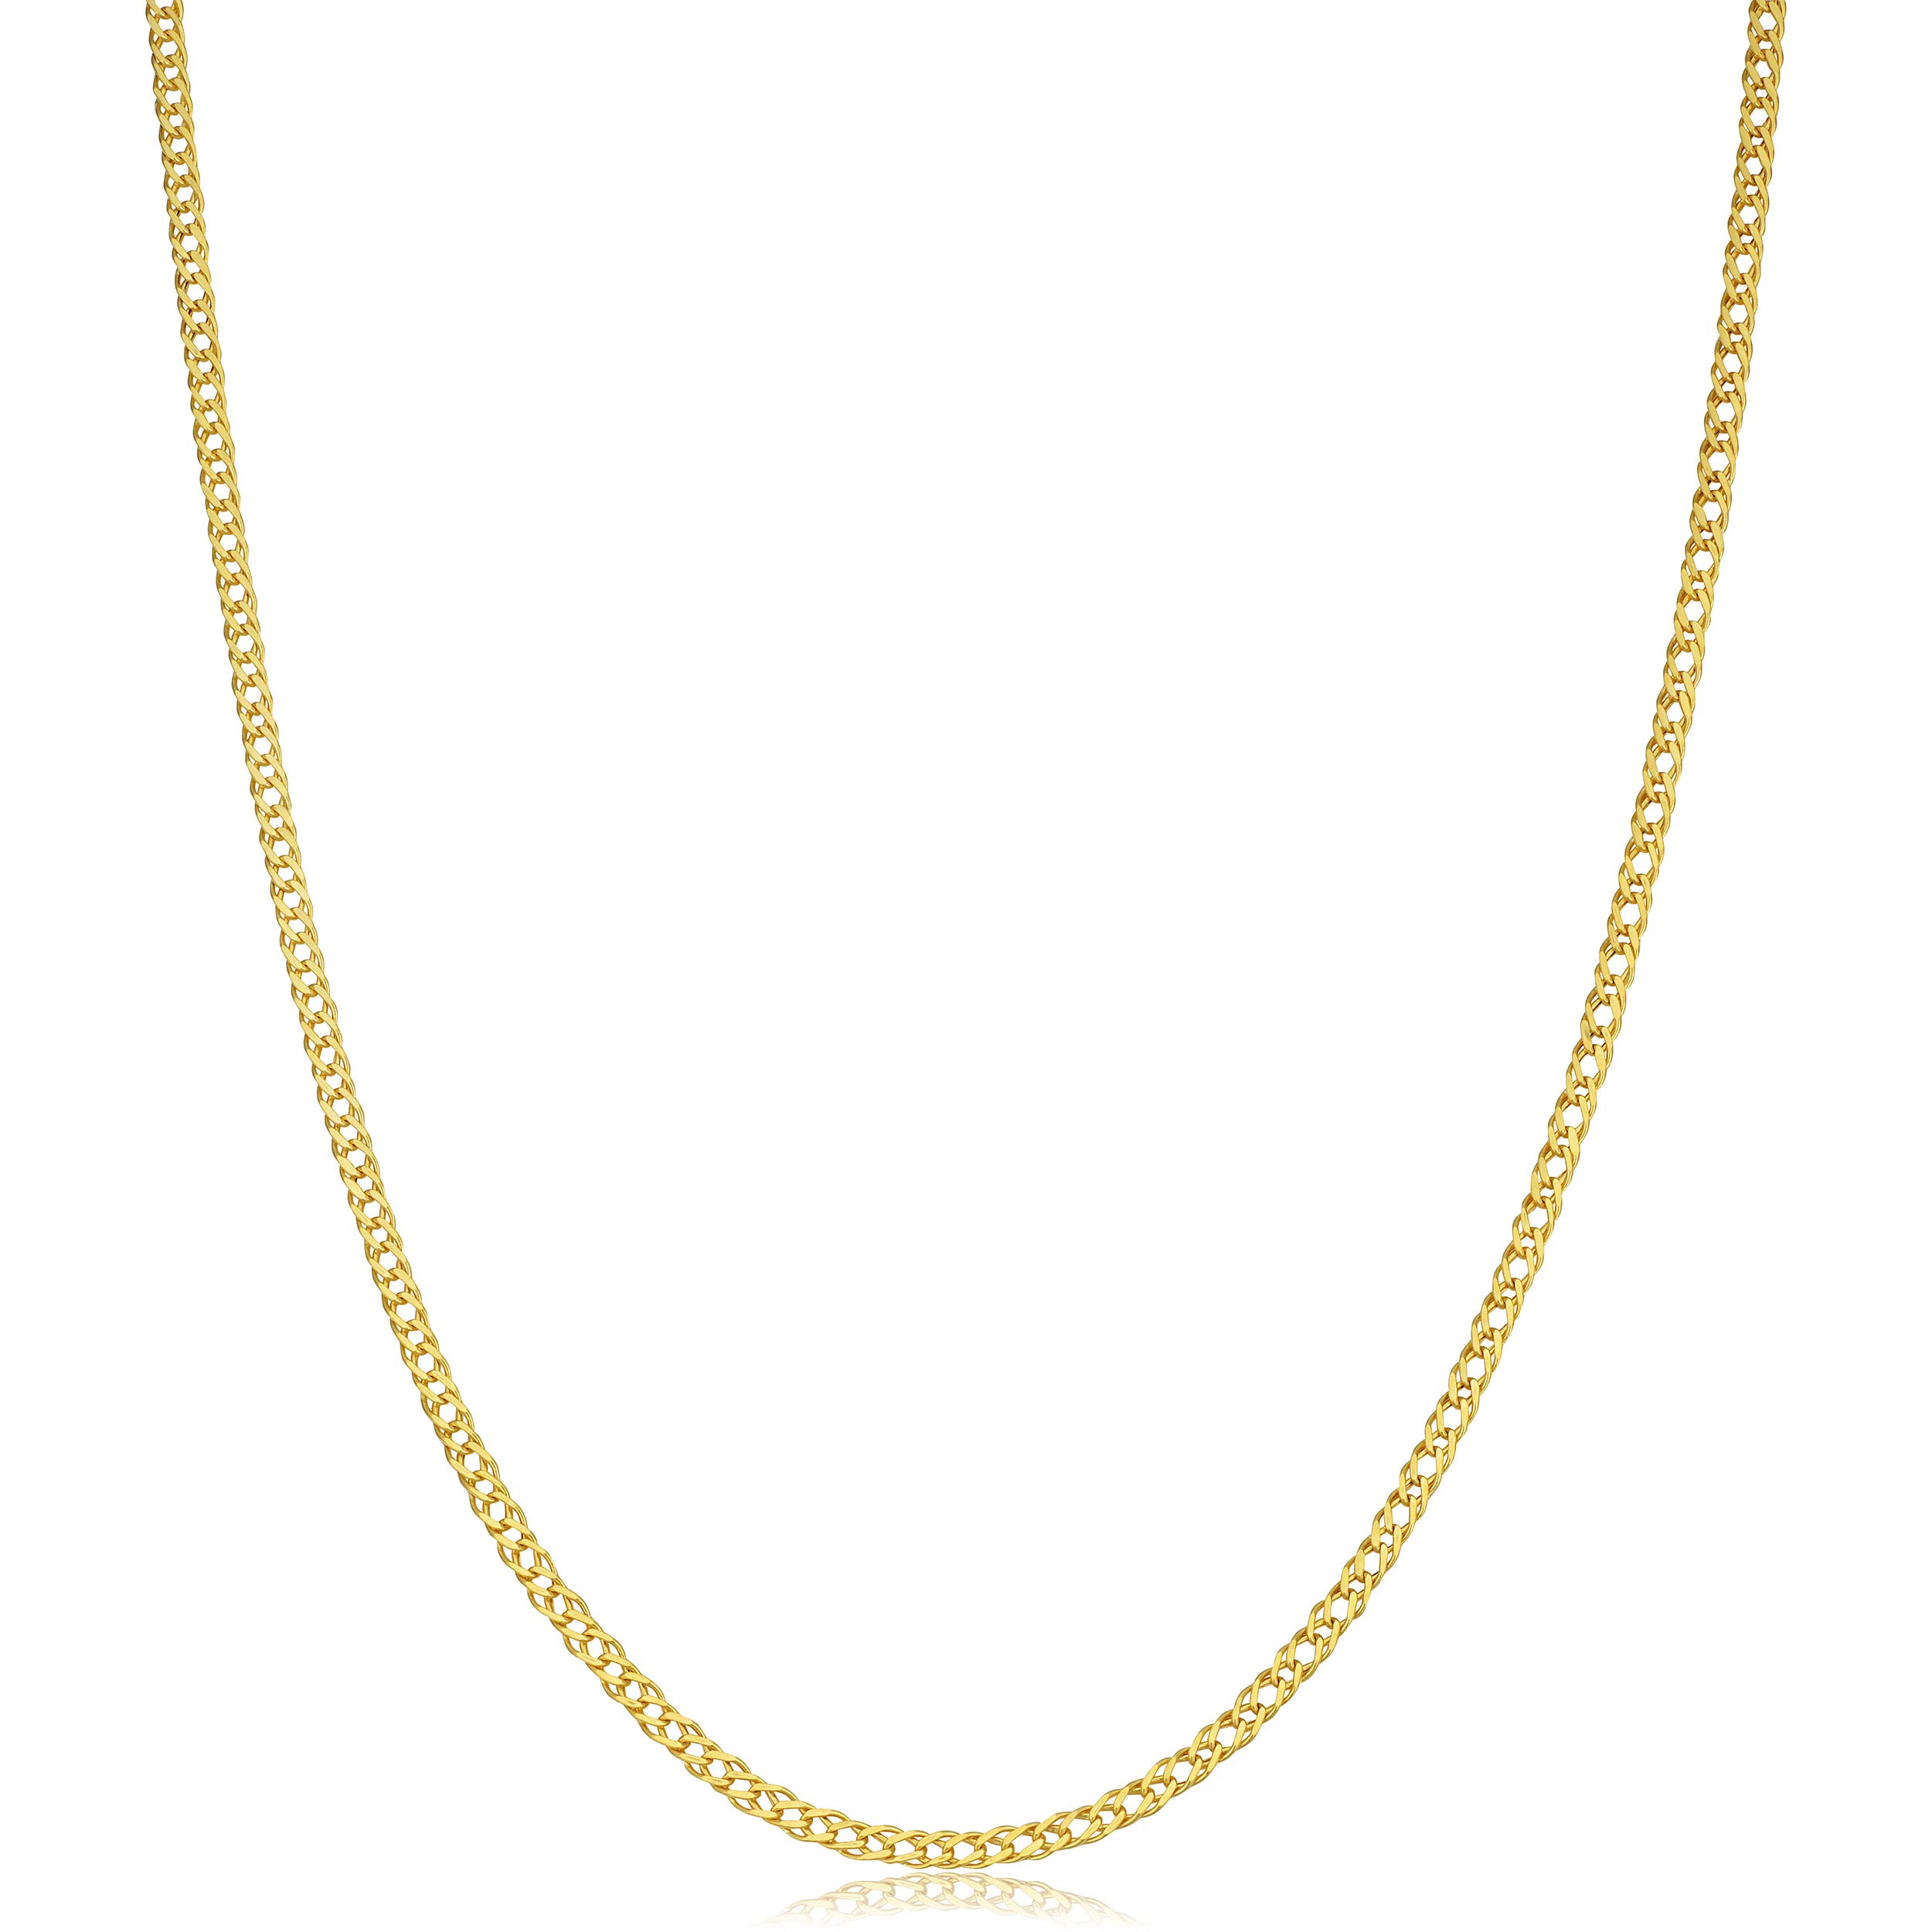 Kooljewelry 14k Yellow Gold 2 mm Diamond Weave Chain Necklace (18, 20, 22, 24, 26, 30 or 36 inch)